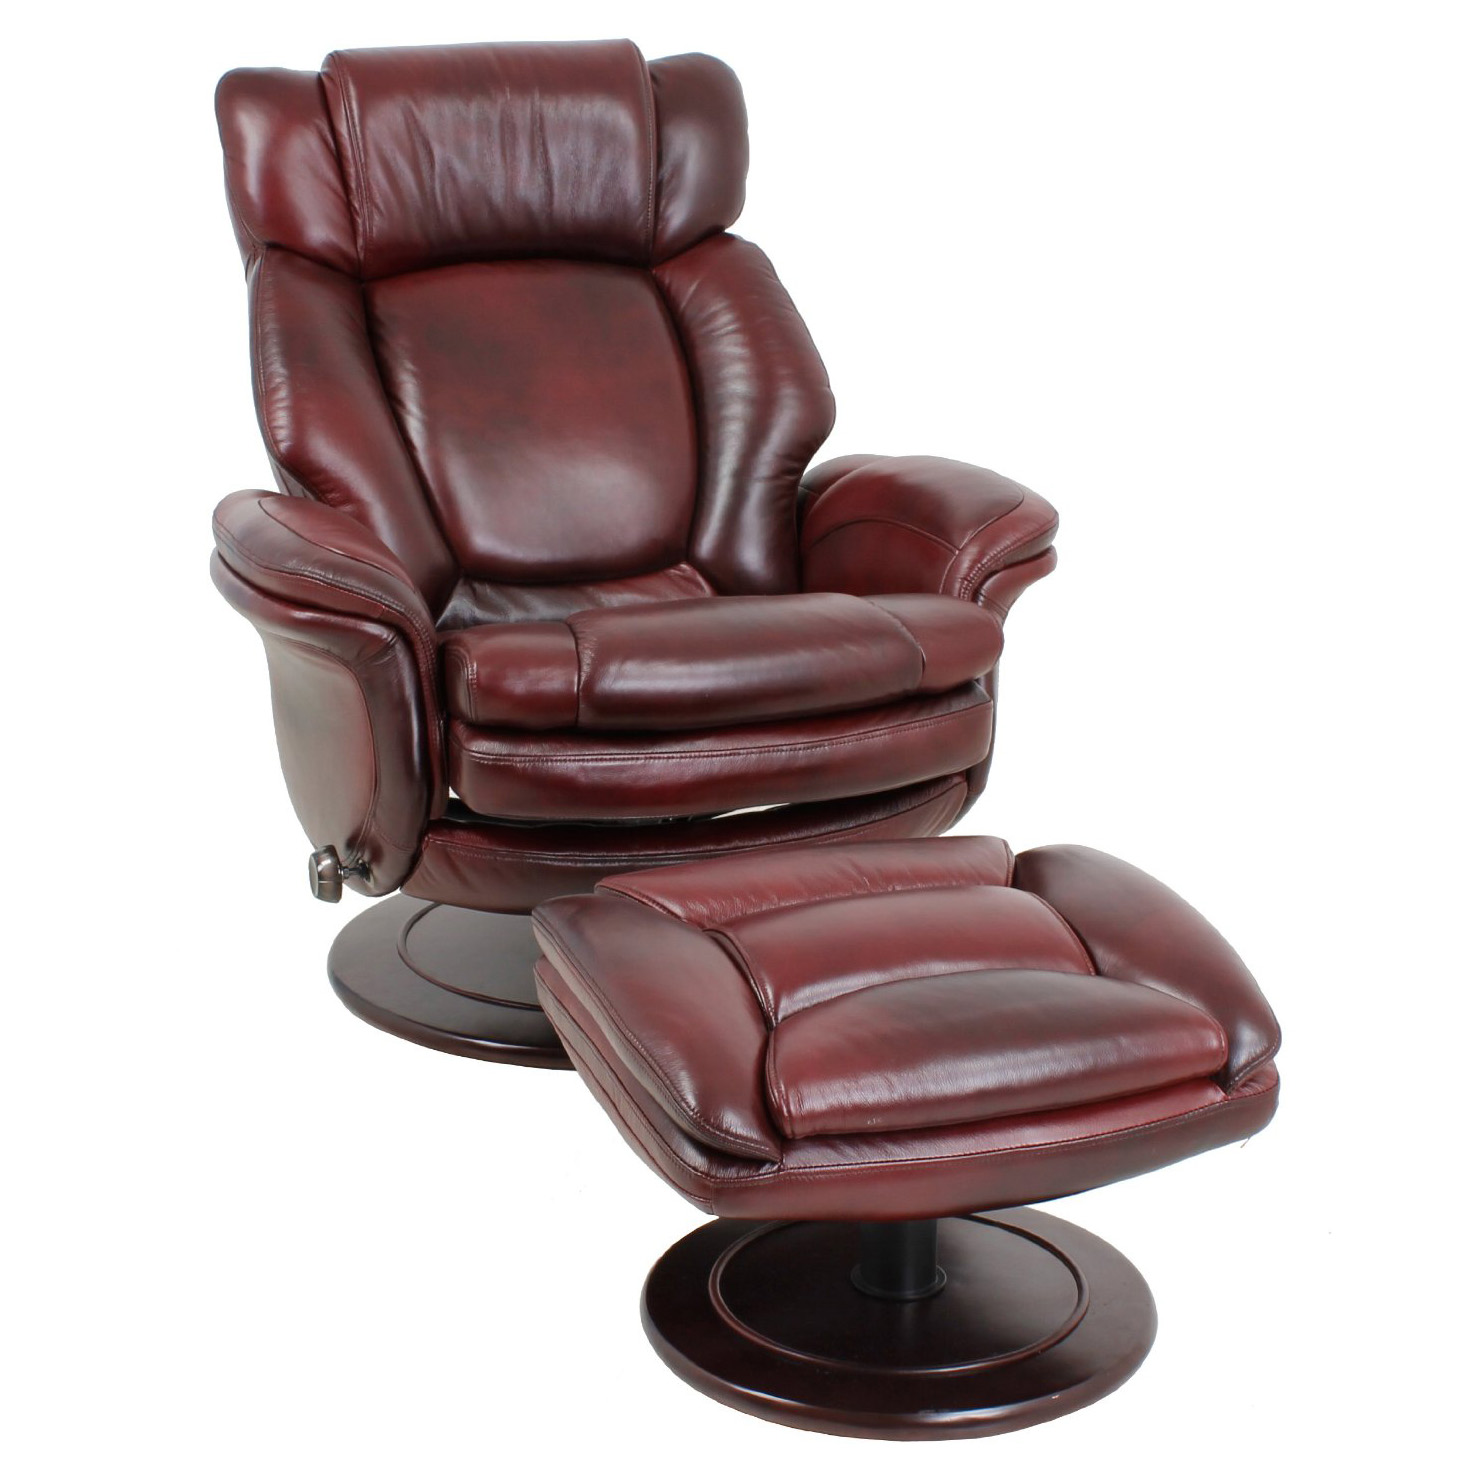 Barcalounger Lumina II Recliner Chair and Ottoman - Leather Recliner Chair Furniture - Lounge ...